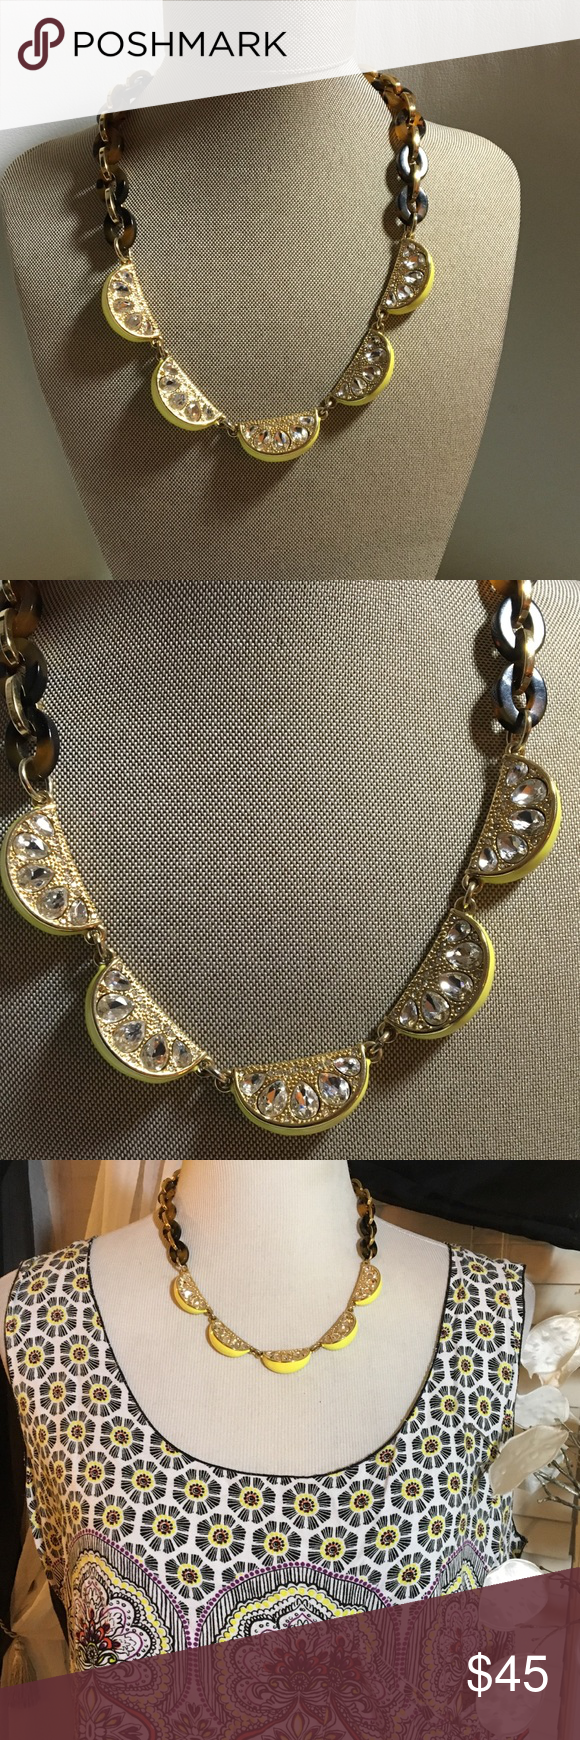 Ann Taylor necklace Stunning and elegant necklace in perfect condition , great quality, solid gold chain Ann Taylor Jewelry Necklaces